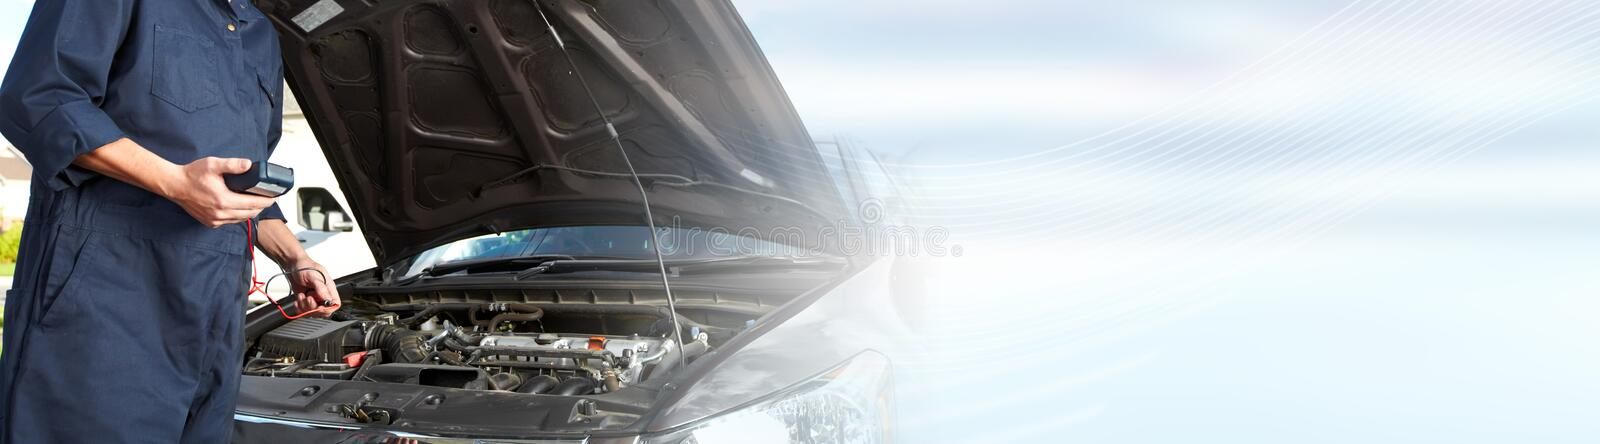 Car mechanic working in auto repair service. royalty free stock photography